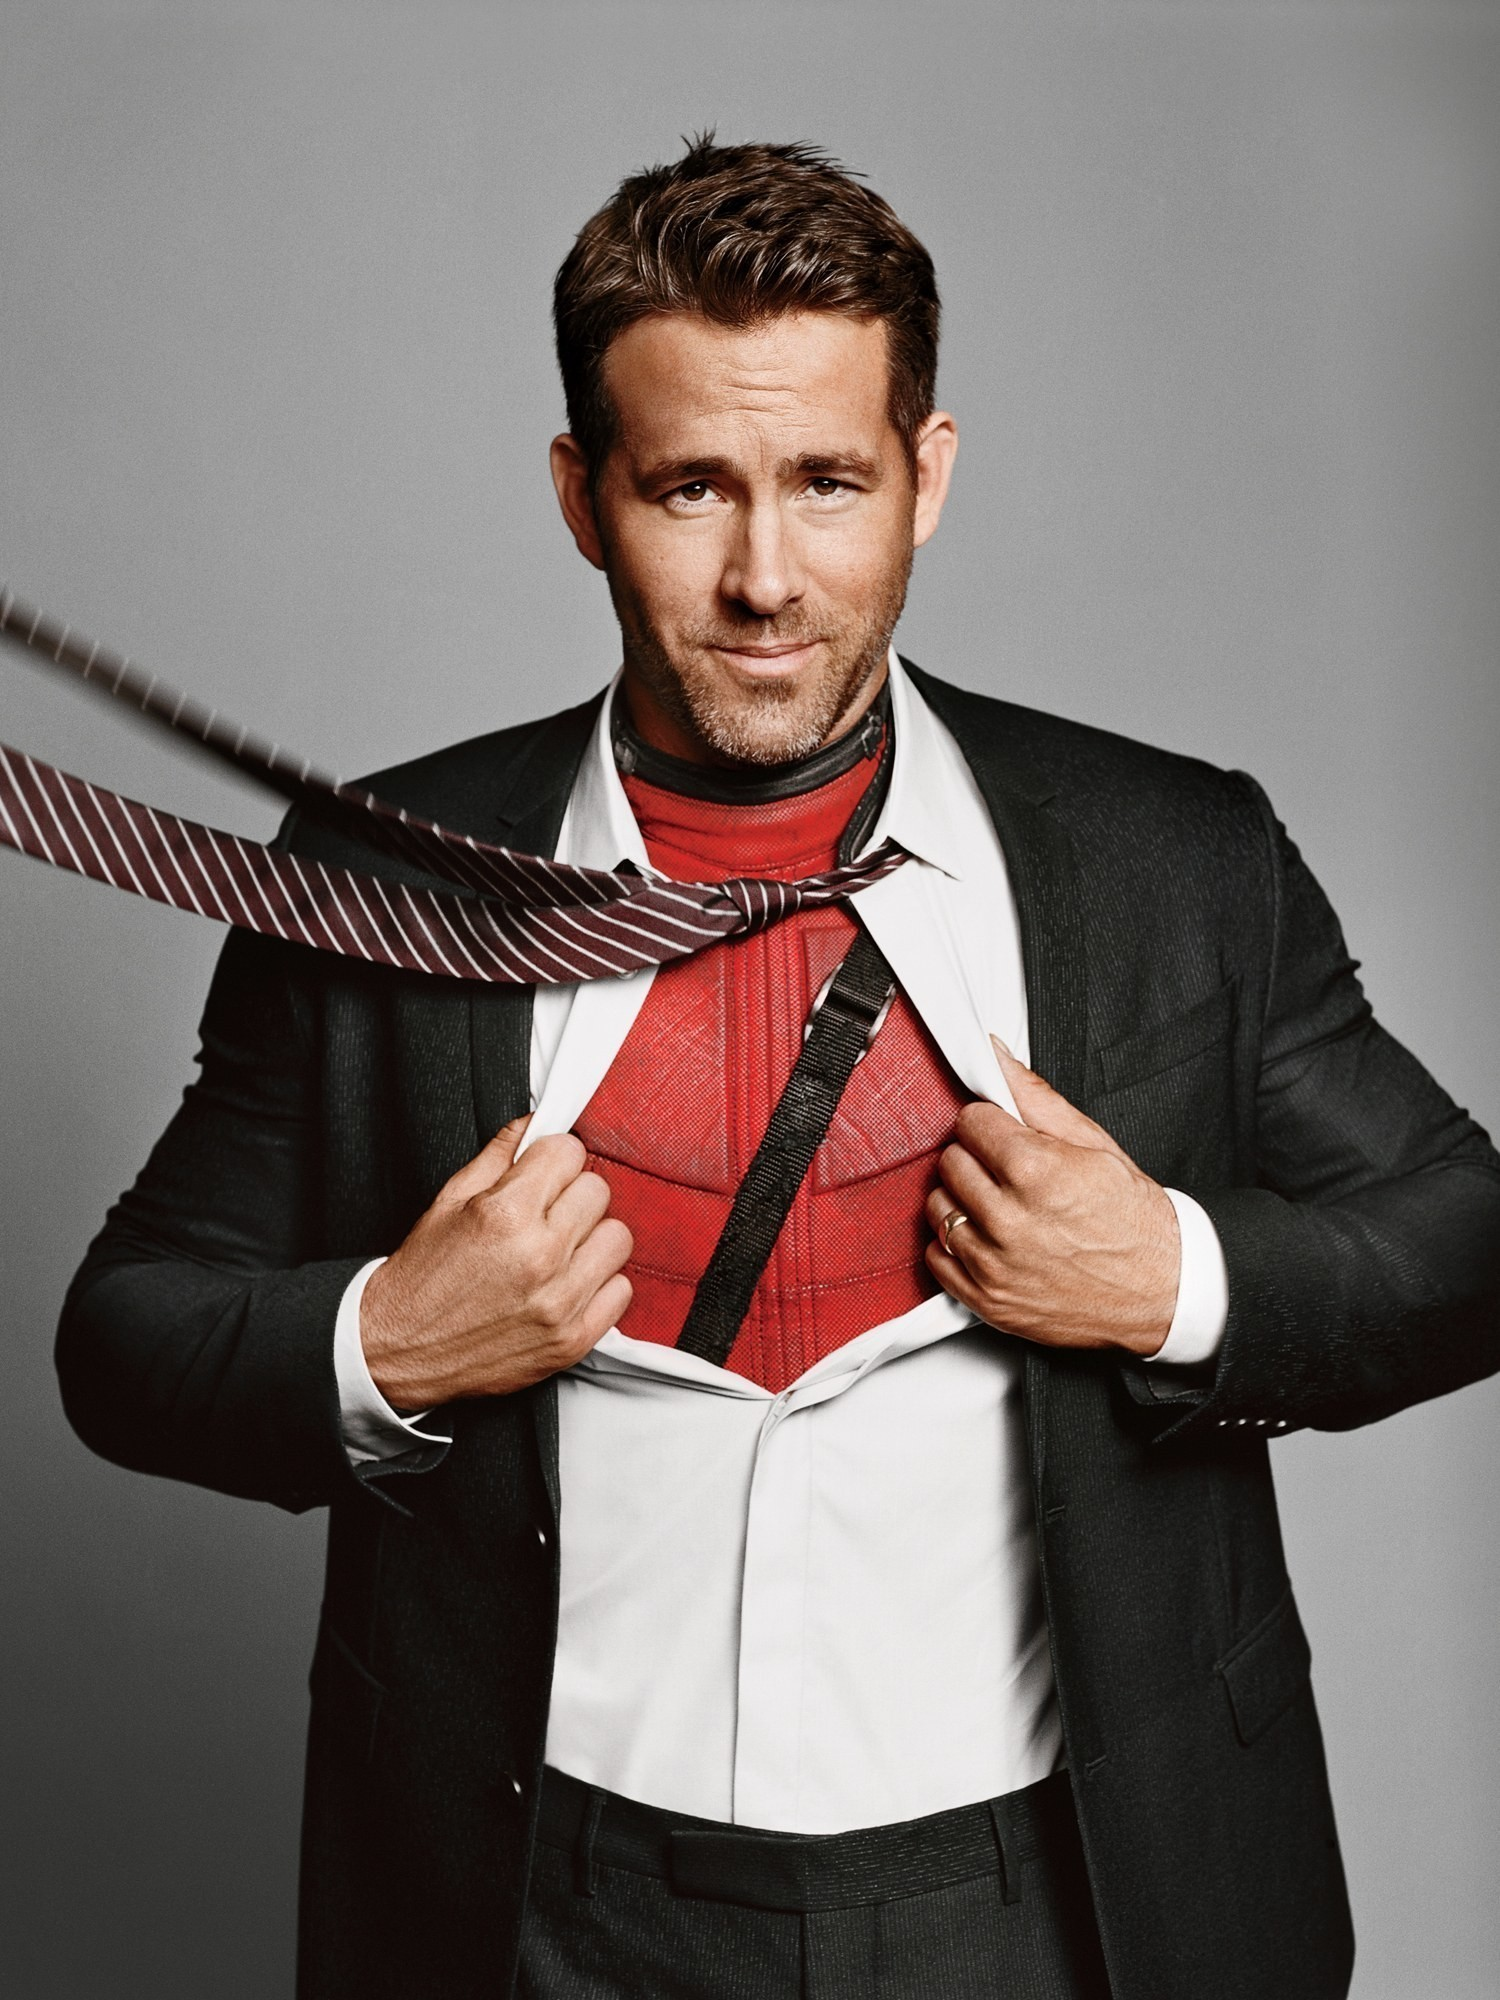 Ryan Reynolds on his Deadpool Obsession, Meeting Blake Lively, and His New Film, Life